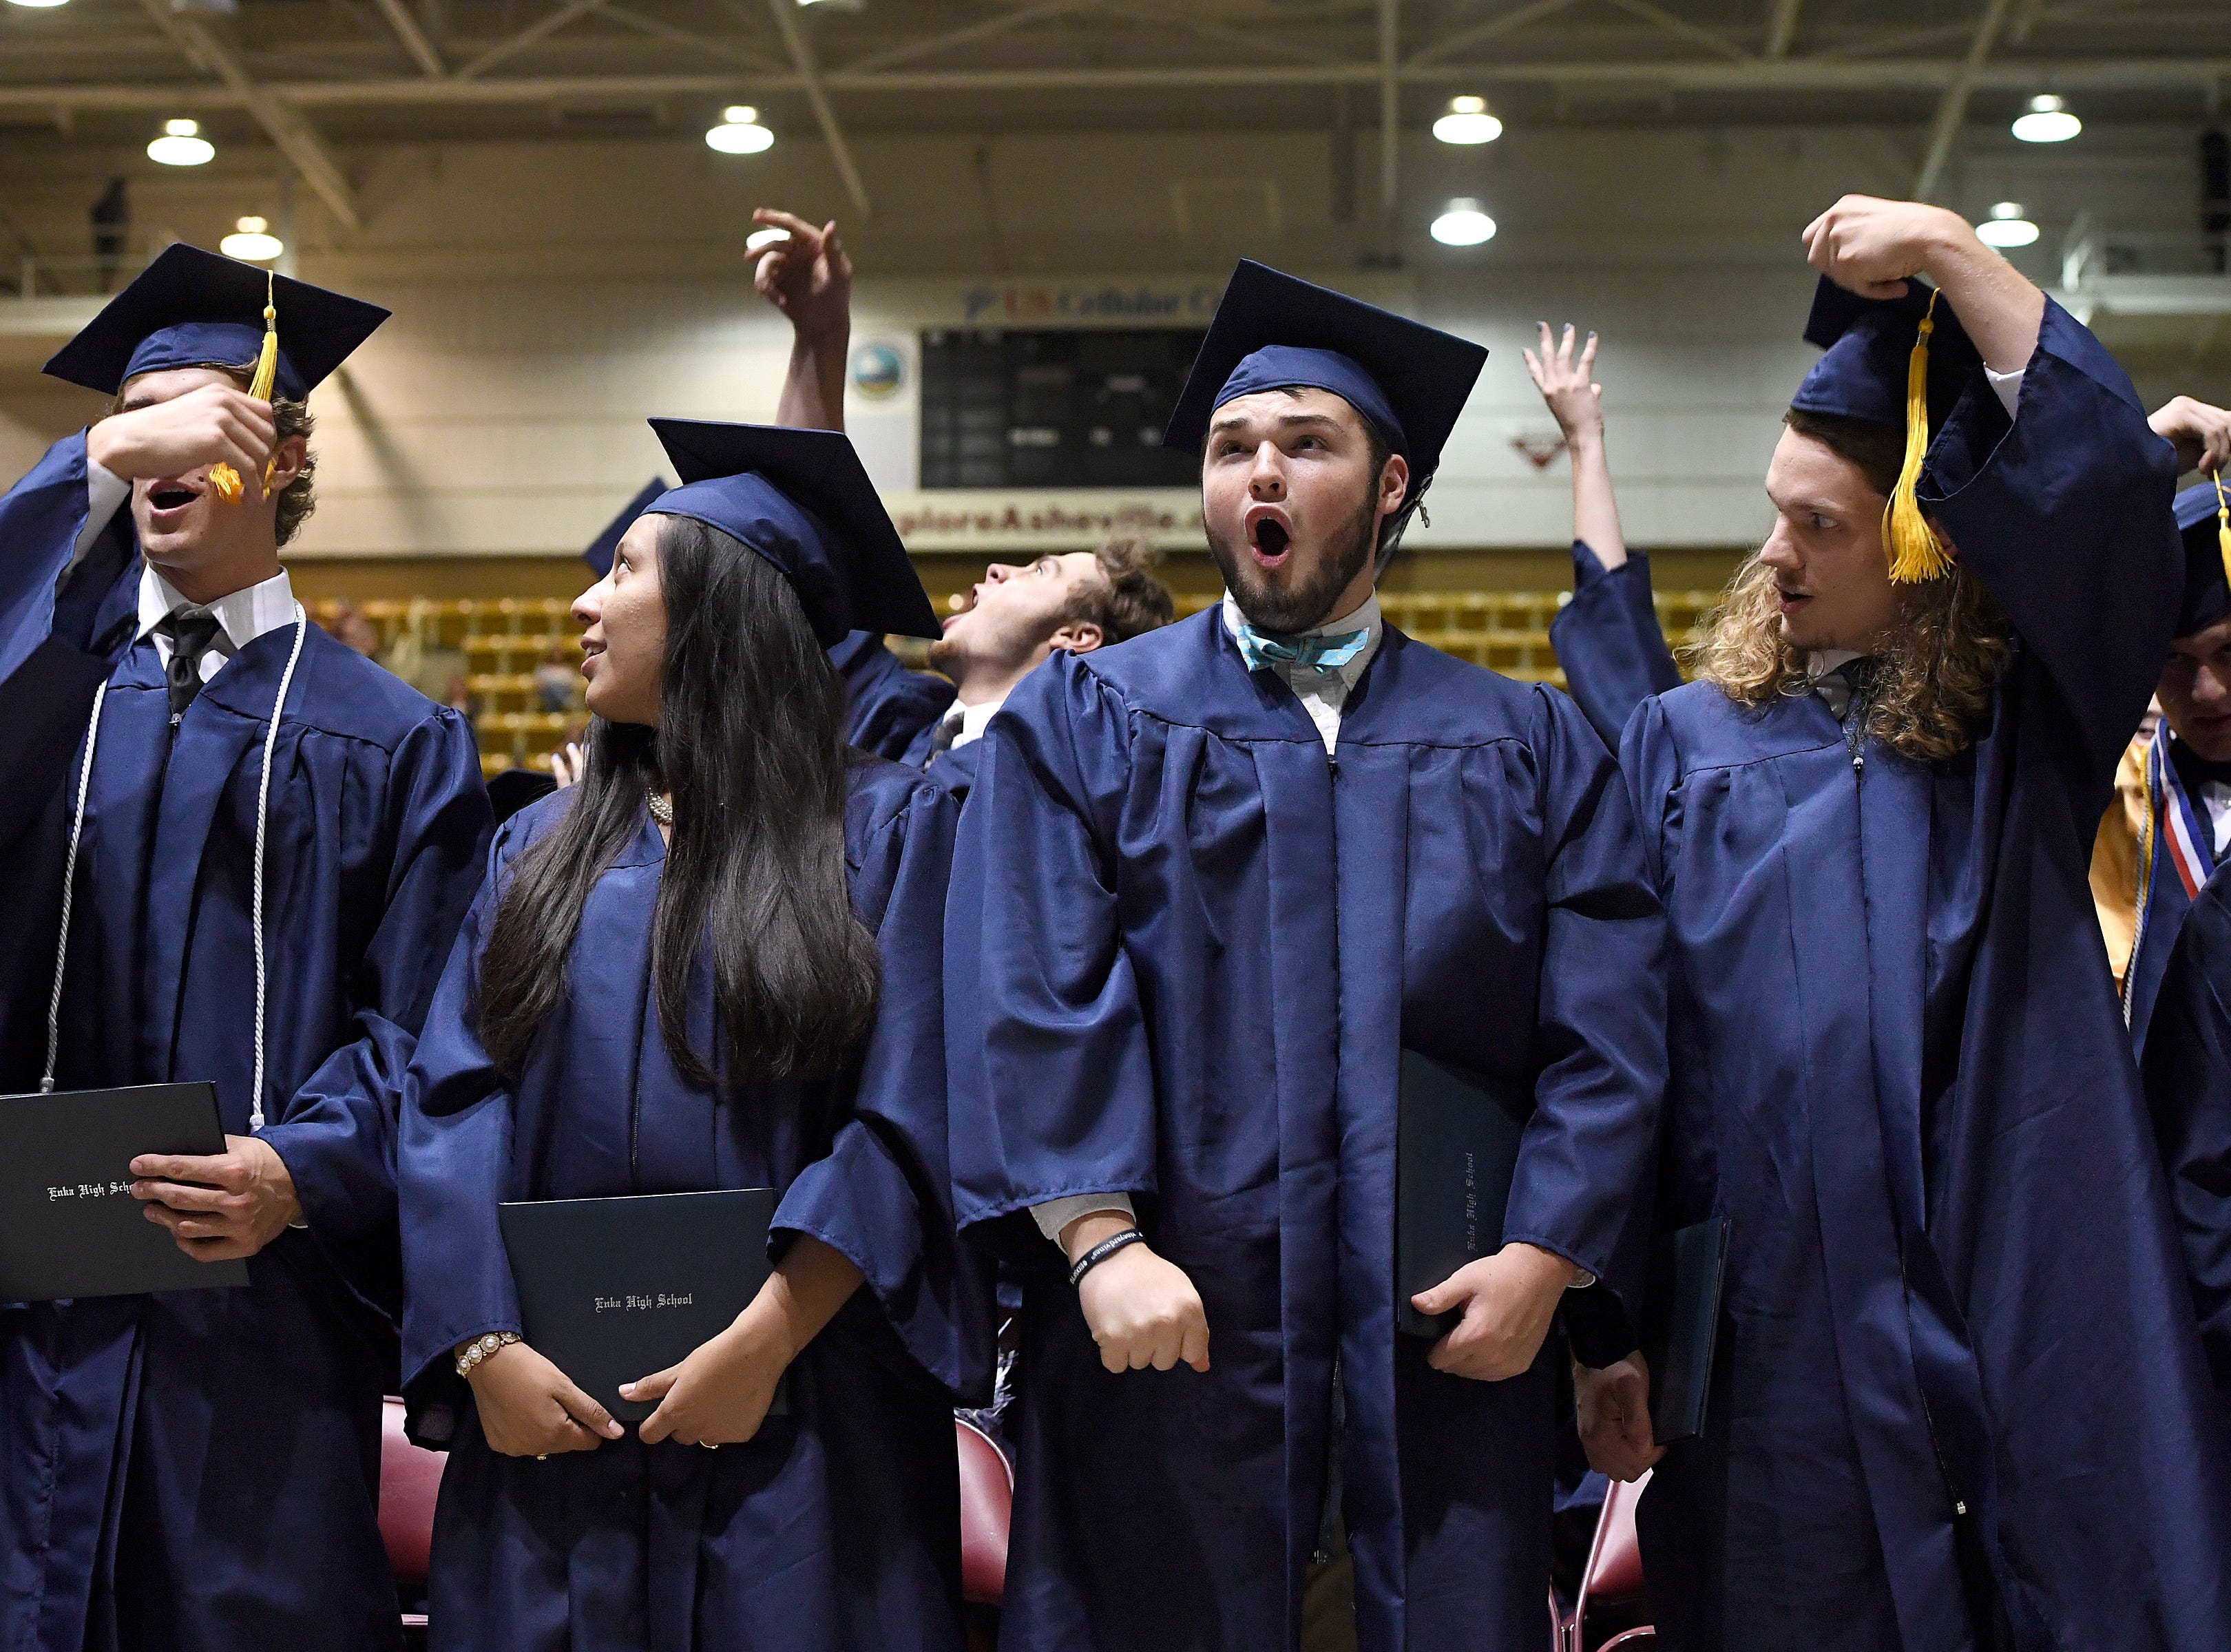 Graduates Janson Anderson, Valeria Arriaga, Christian Artus and Kevin Austin, move their tassels as their diplomas as conferred during the Enka High School Class of 2018 commencement ceremony at the U.S. Cellular Center on Friday, June 15, 2018.